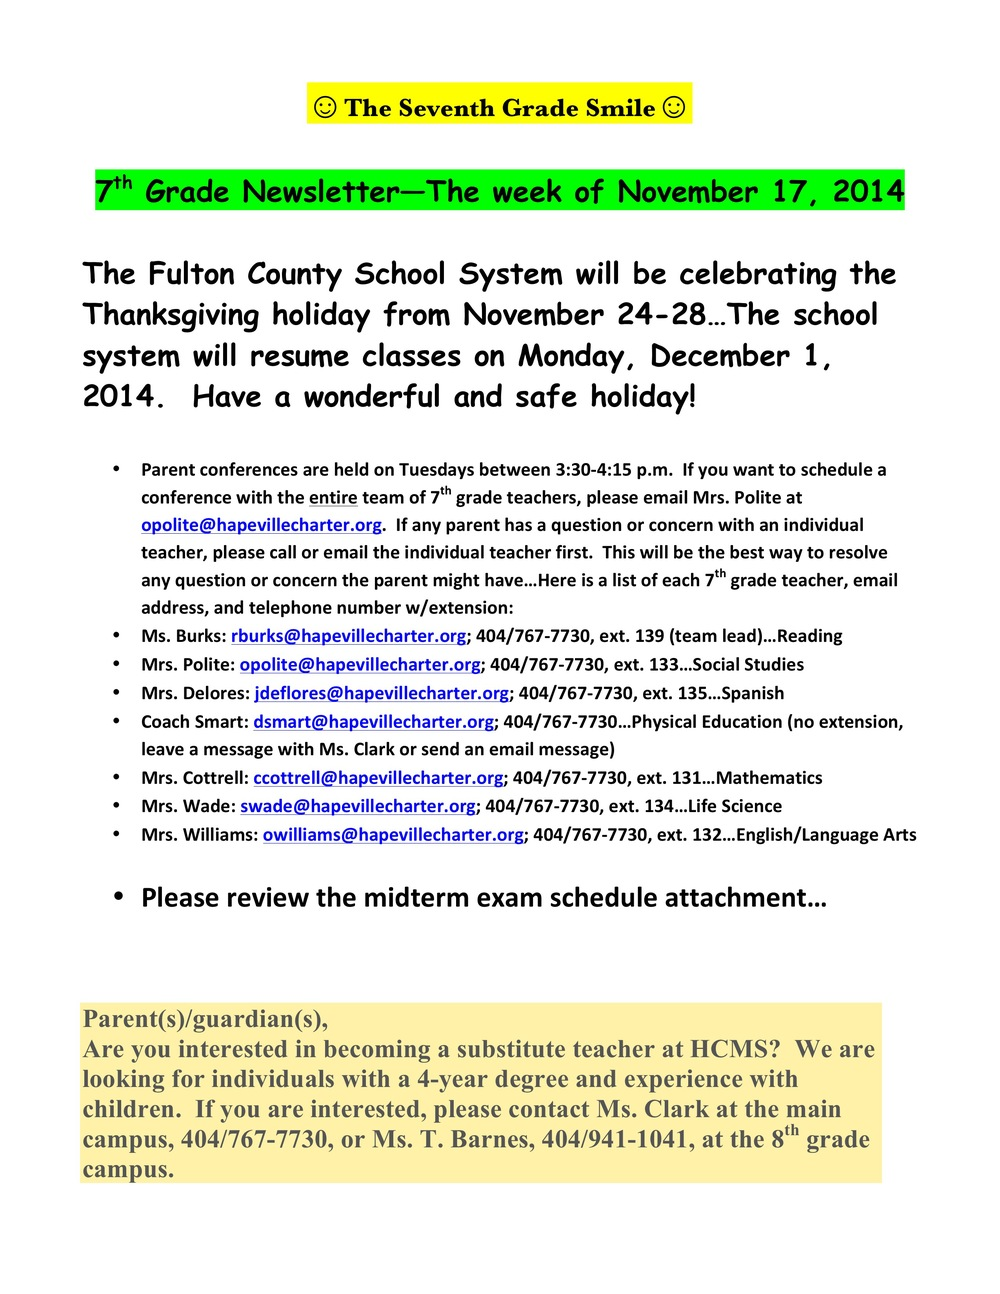 Newsletter Image7th grade November 17th.jpeg